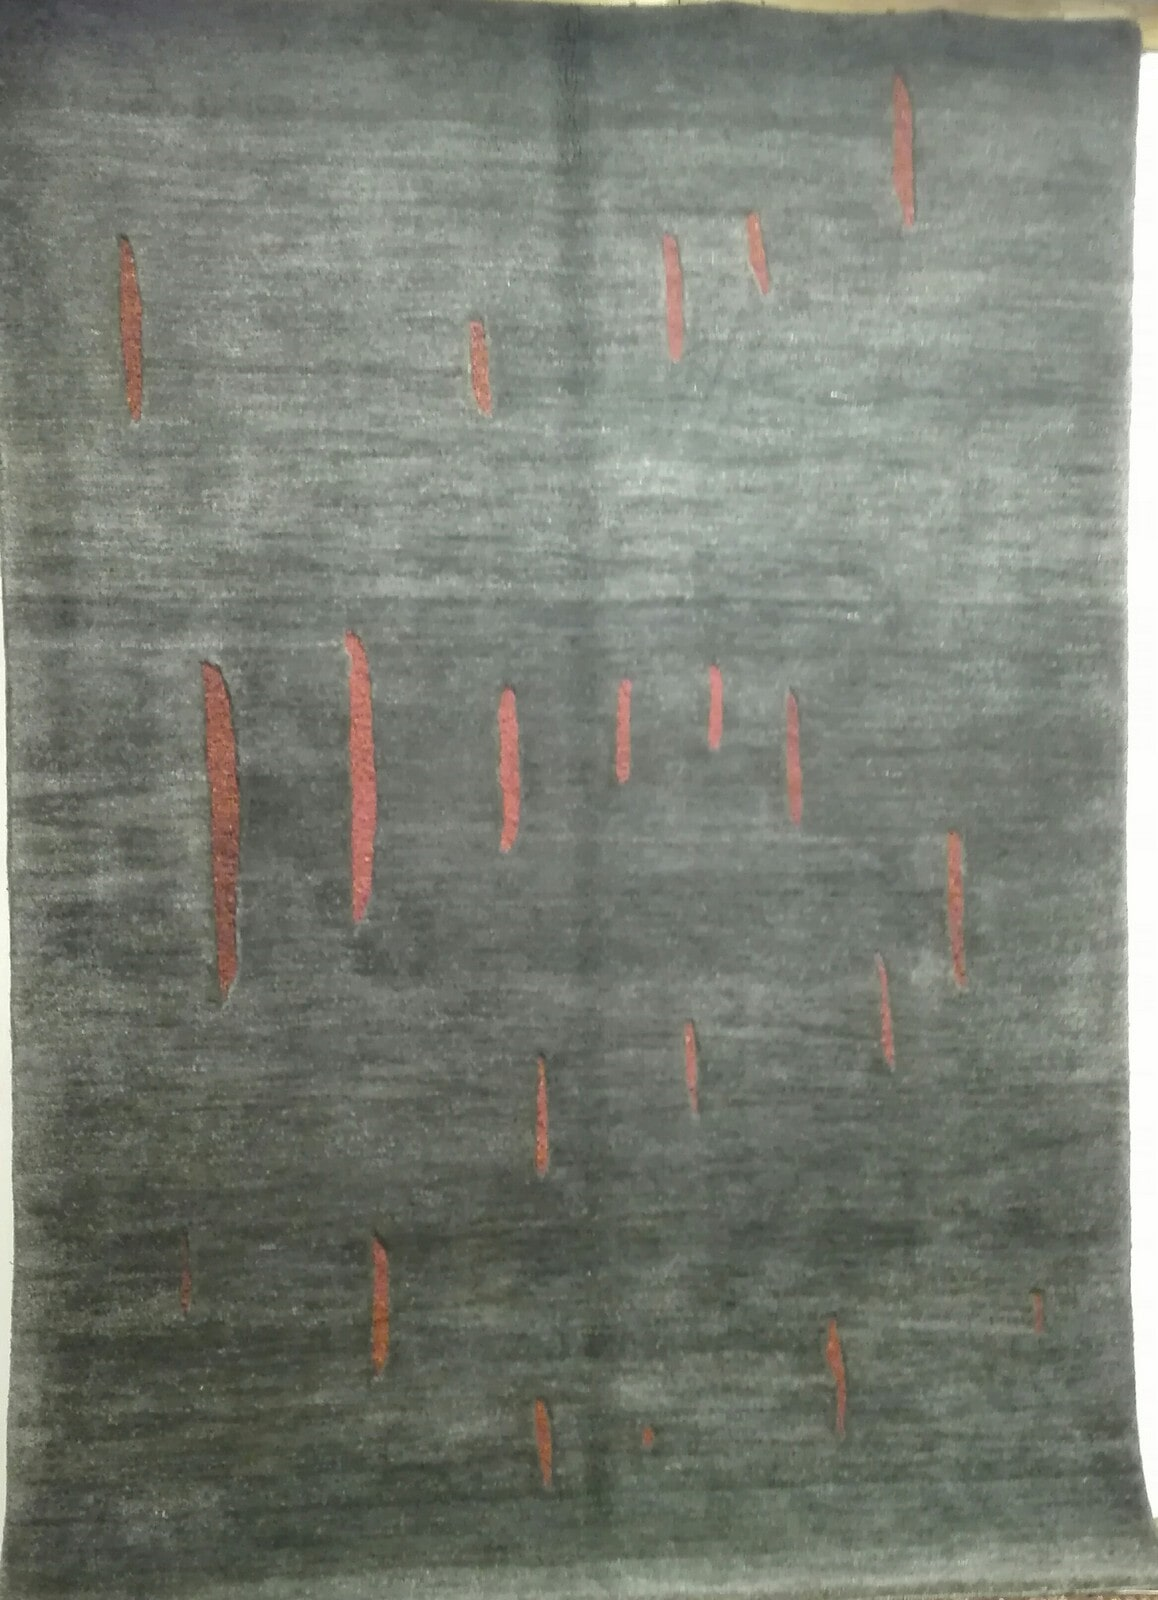 NEW DESIGN COLLECTION 2,40X1,65 € 1650 - 70% € 495